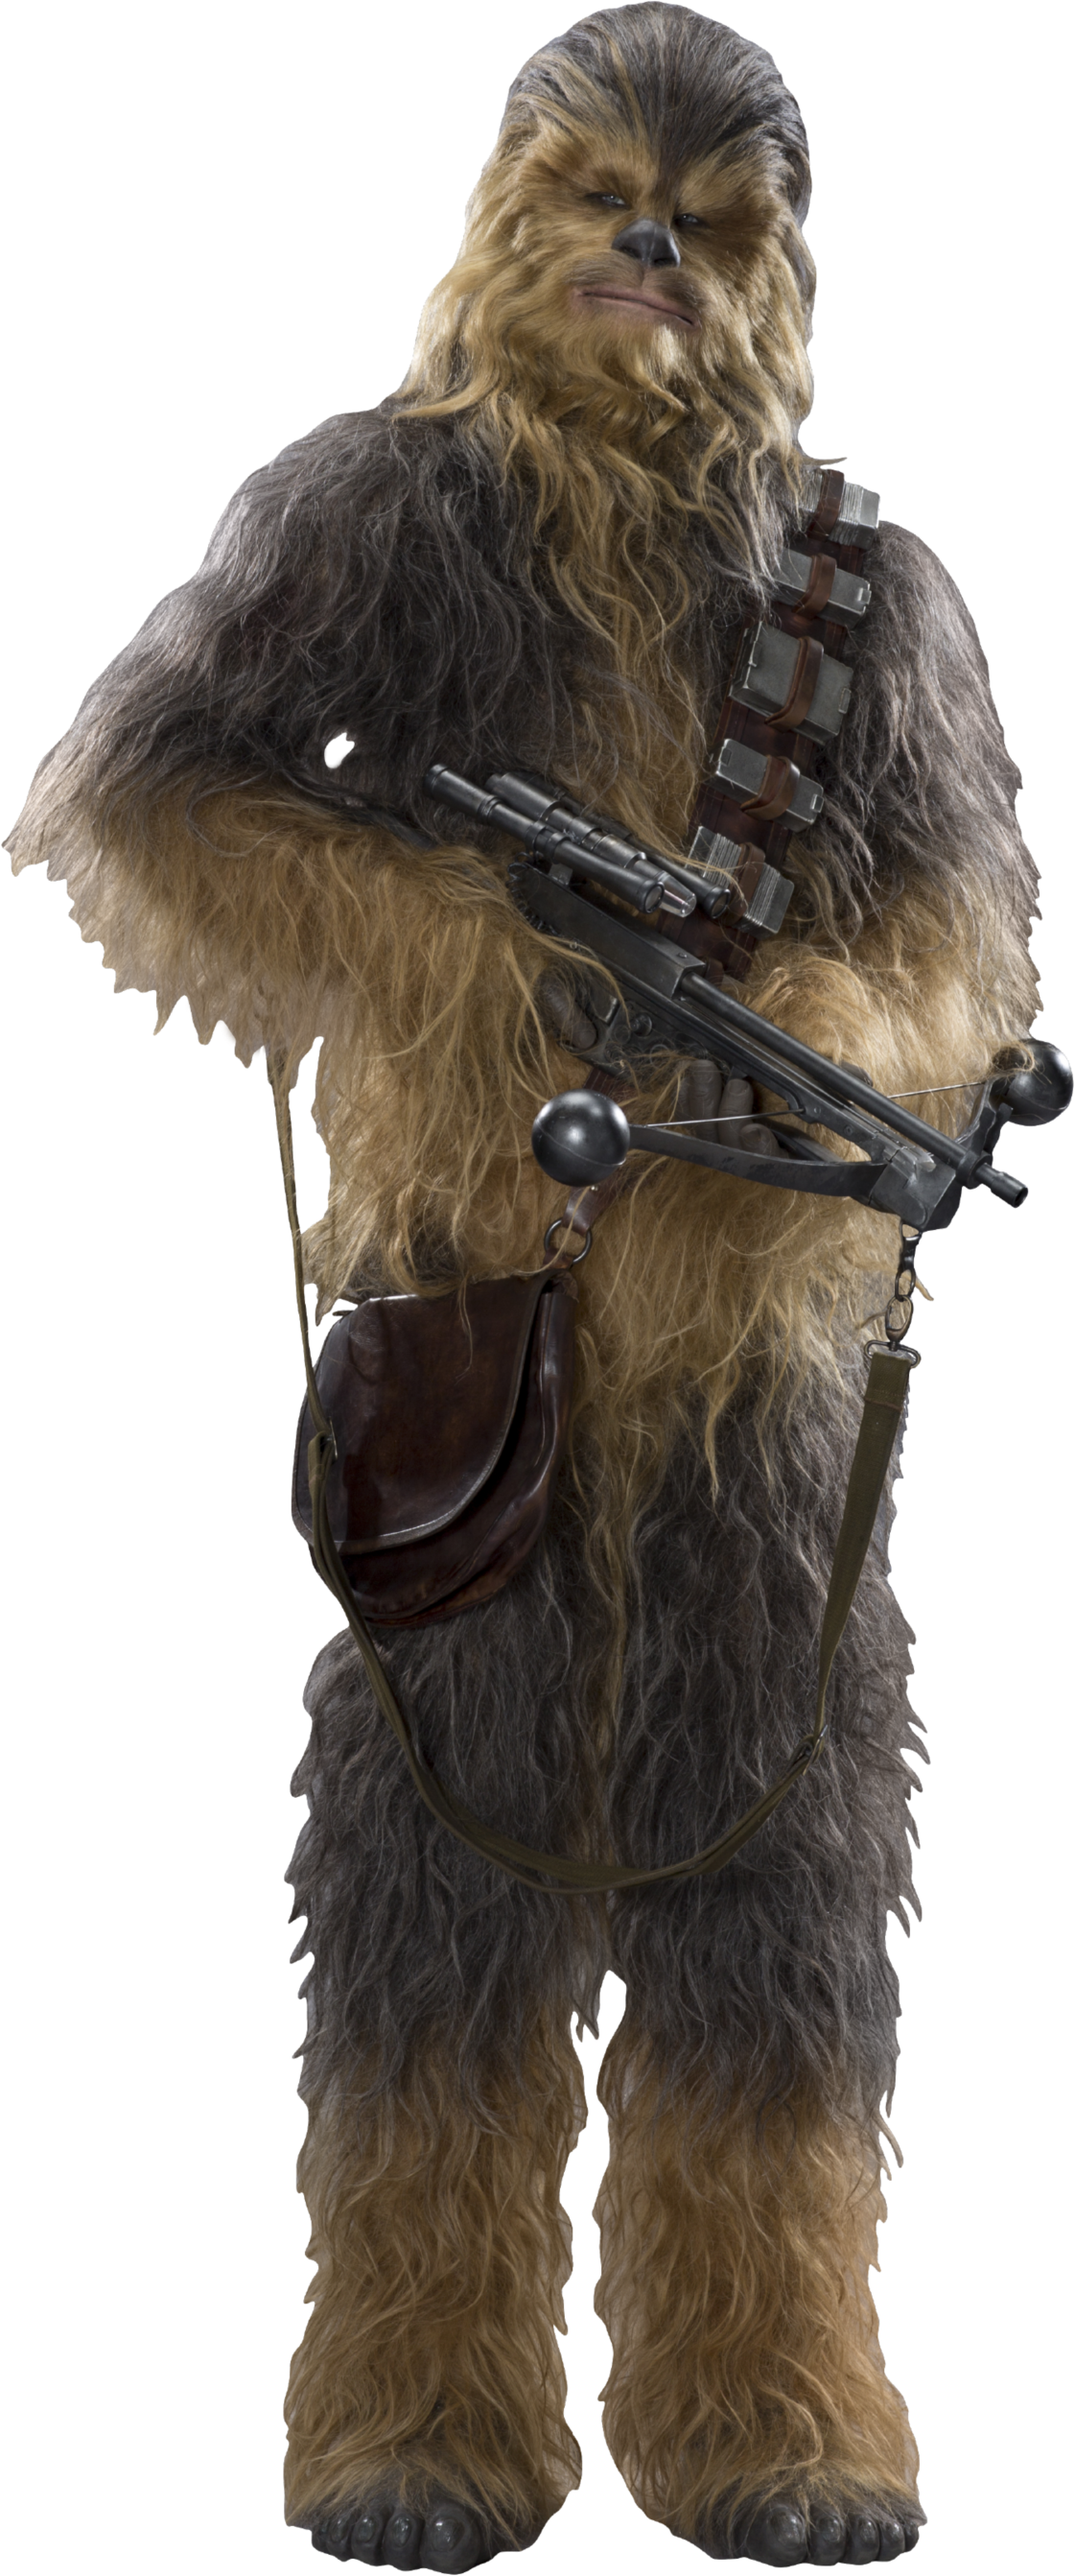 Png mart. Chewbacca clipart transparent background